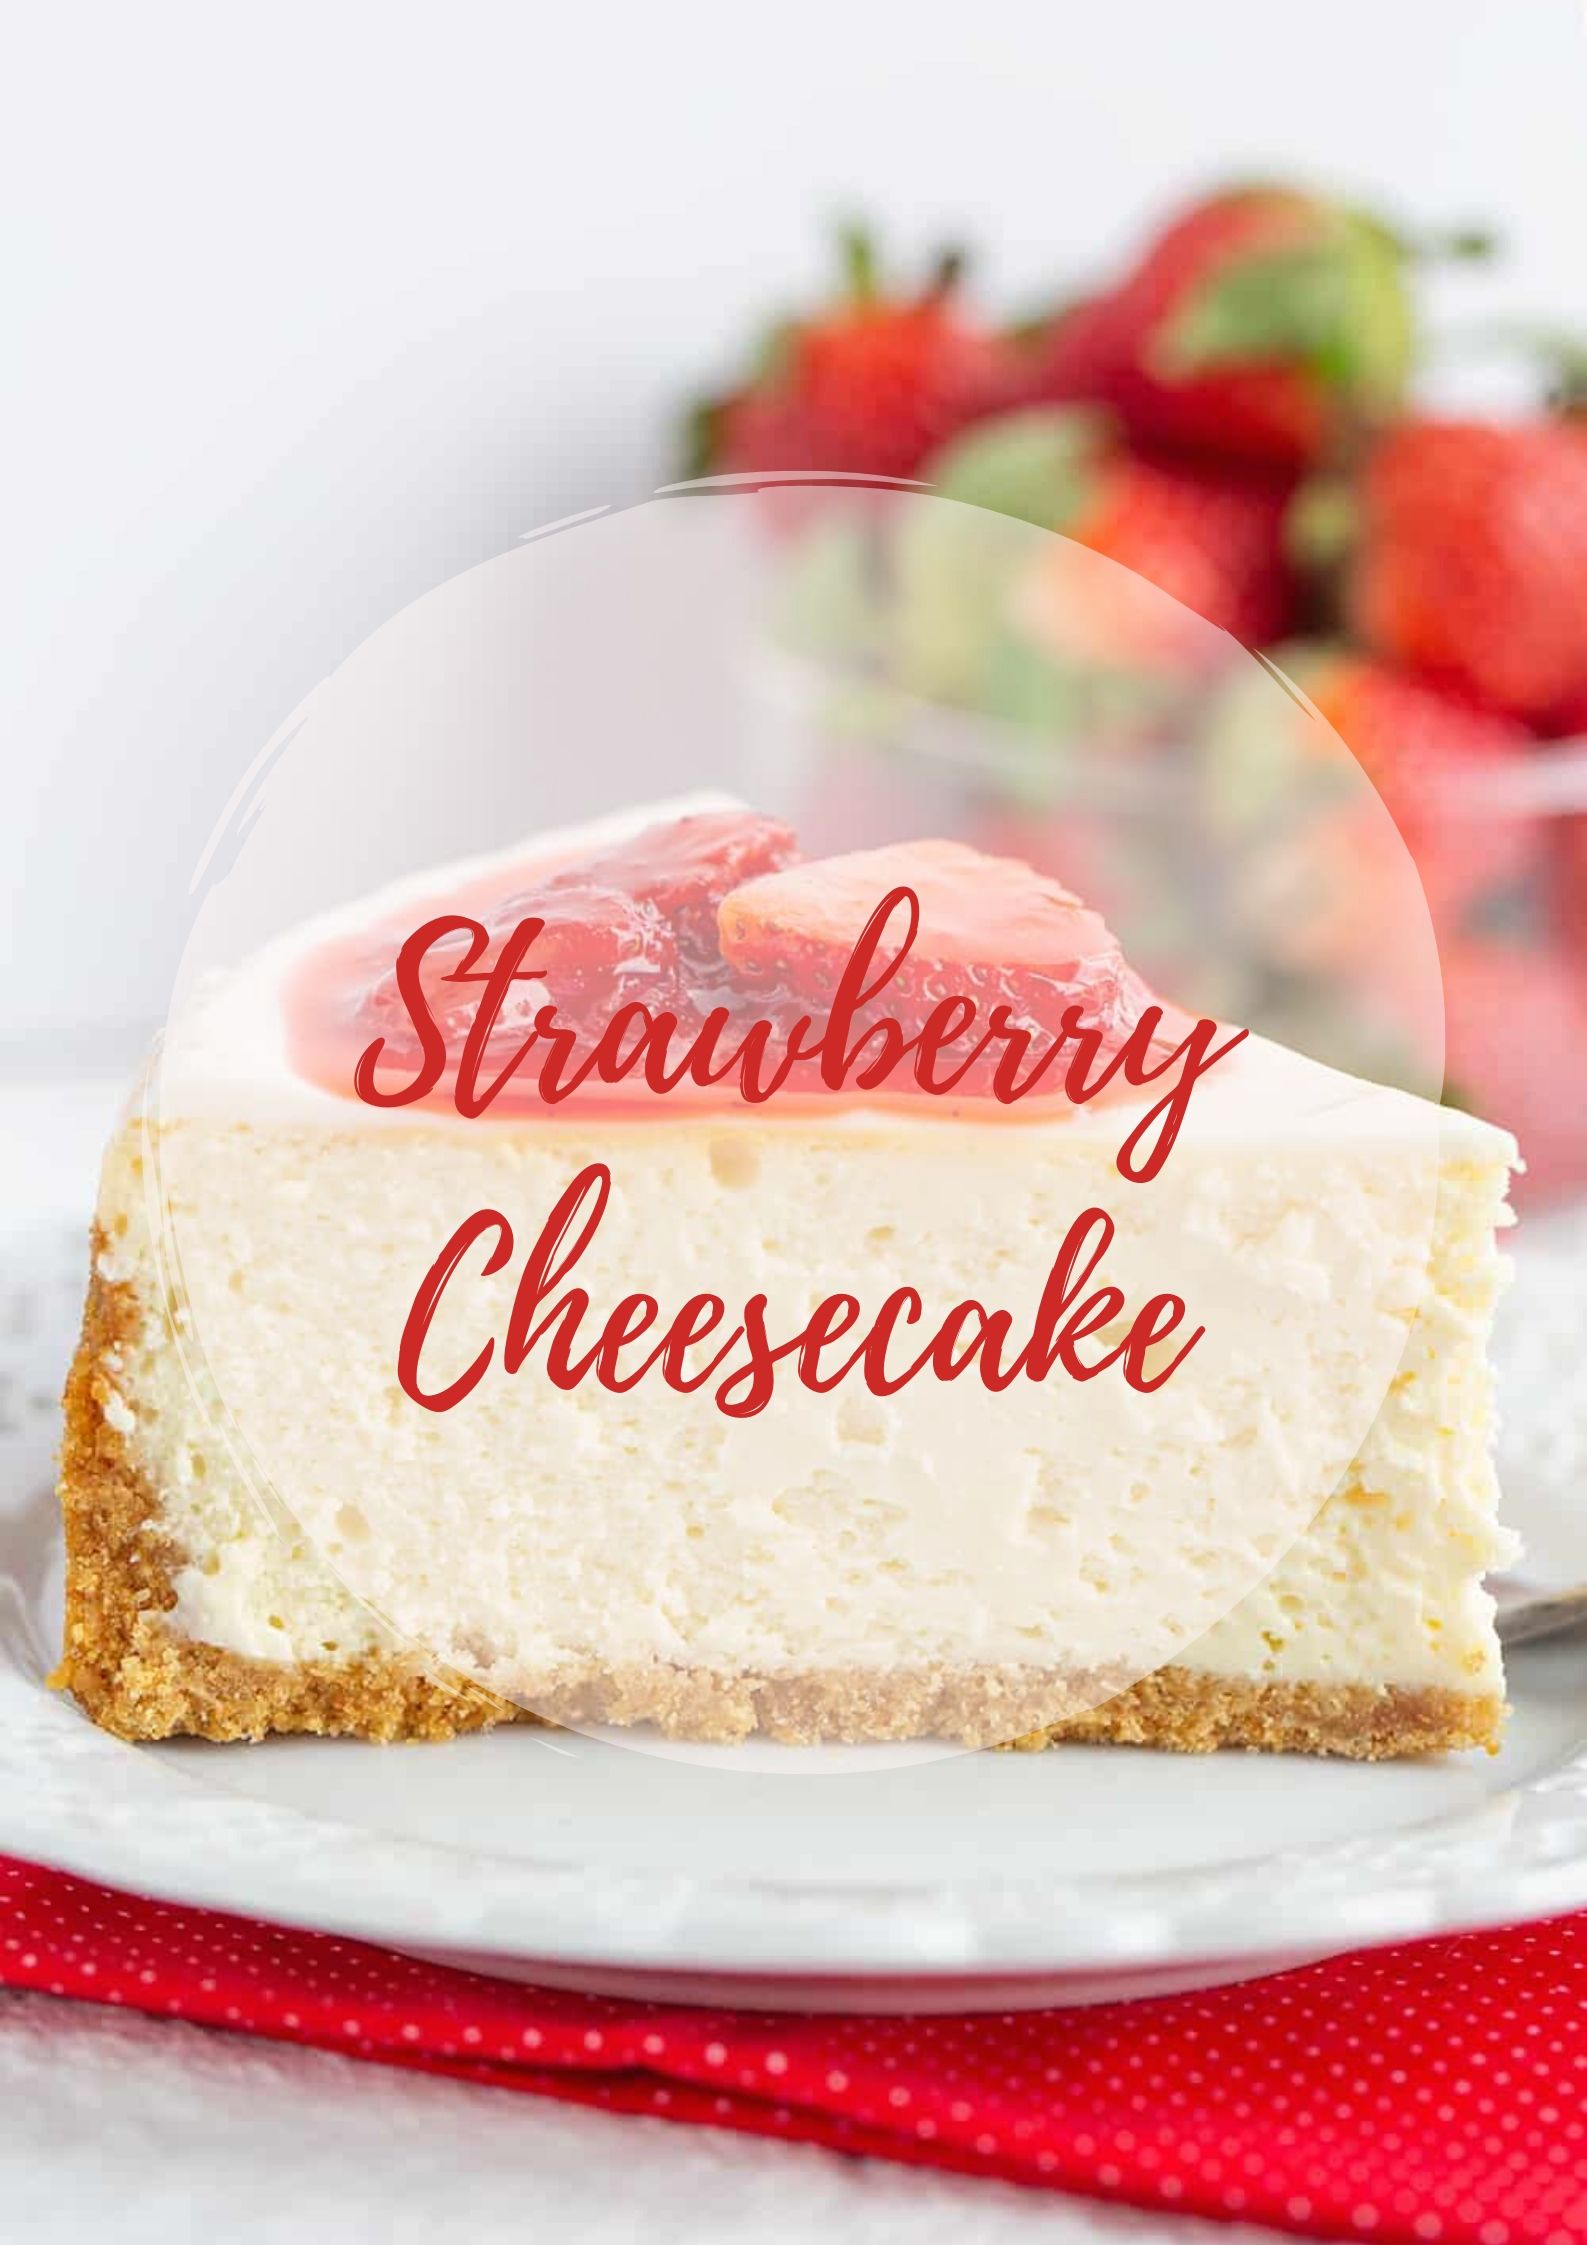 Homemade Cheesecake - Tasty and Healthy